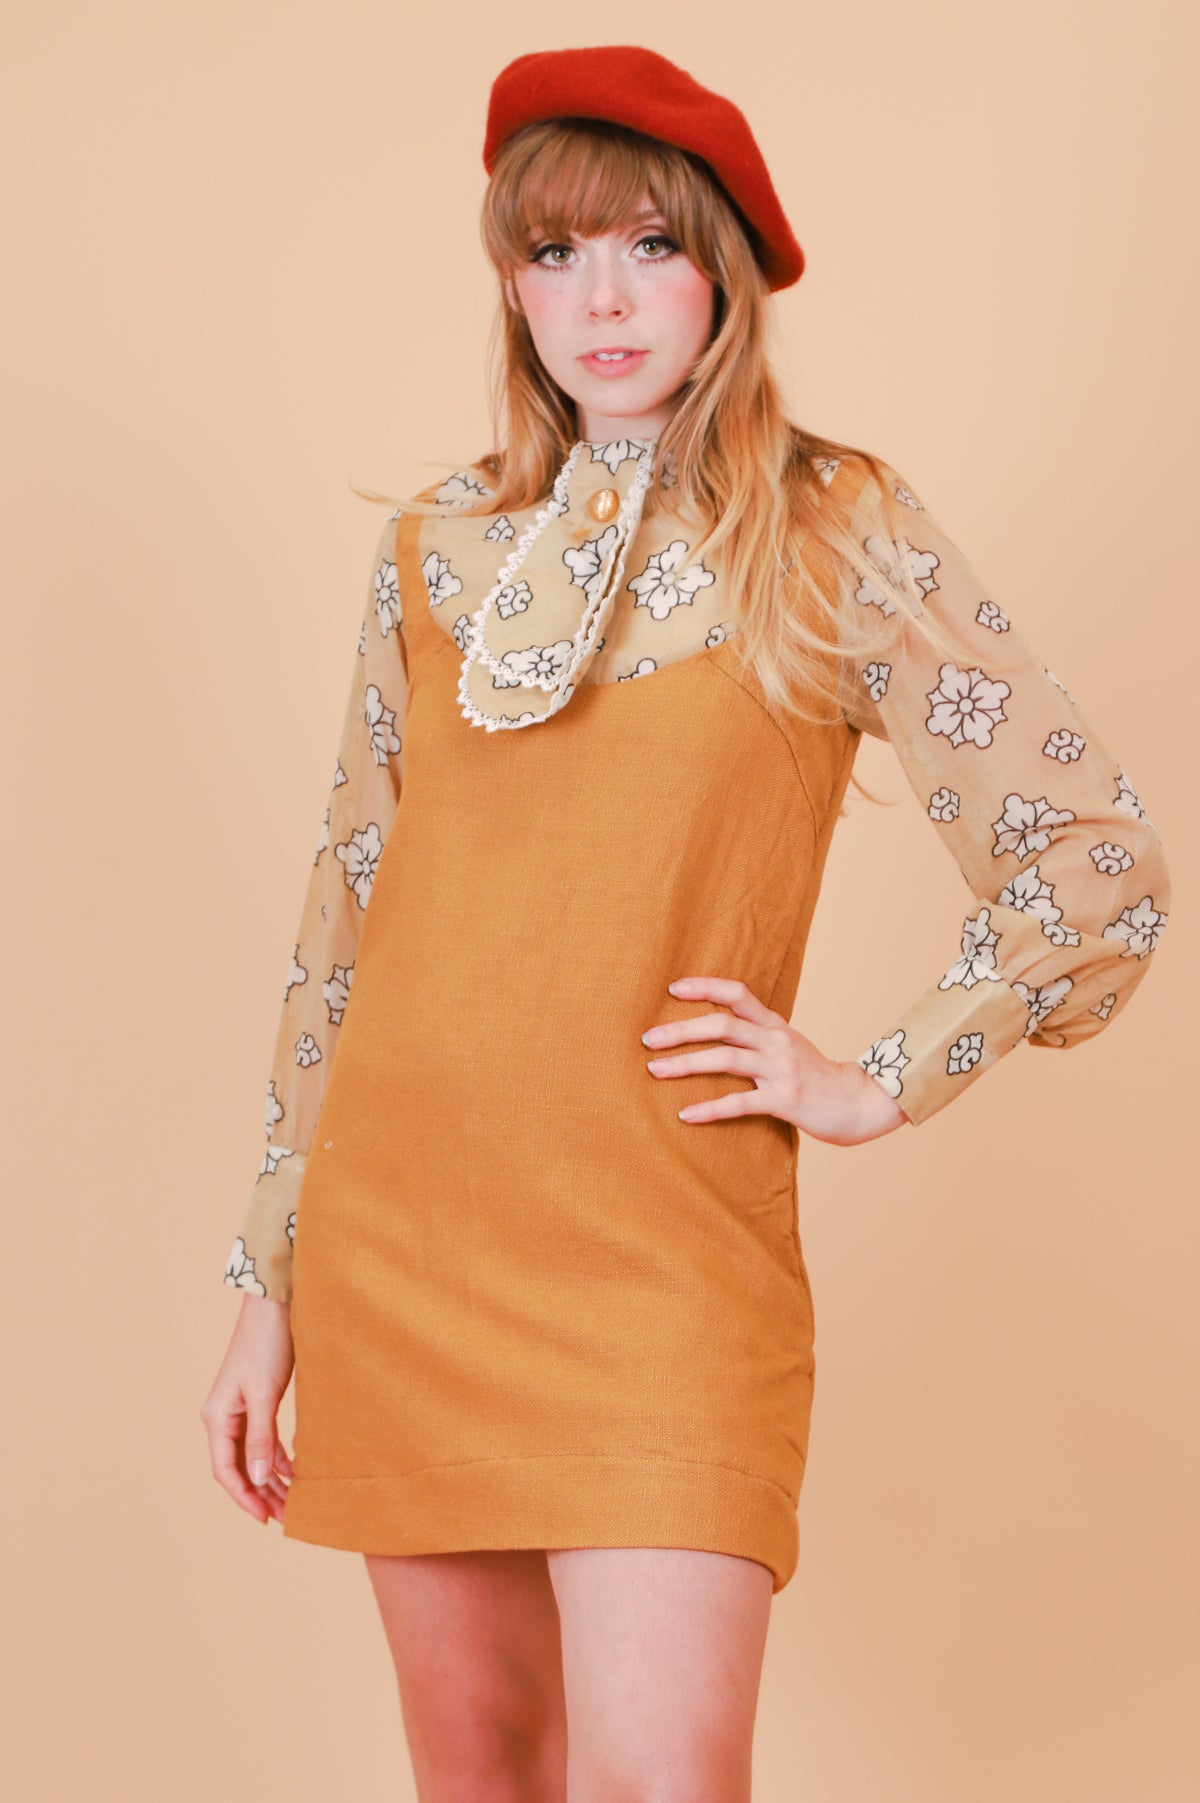 Vintage 1960's Marianne Caramel Mini-Dress